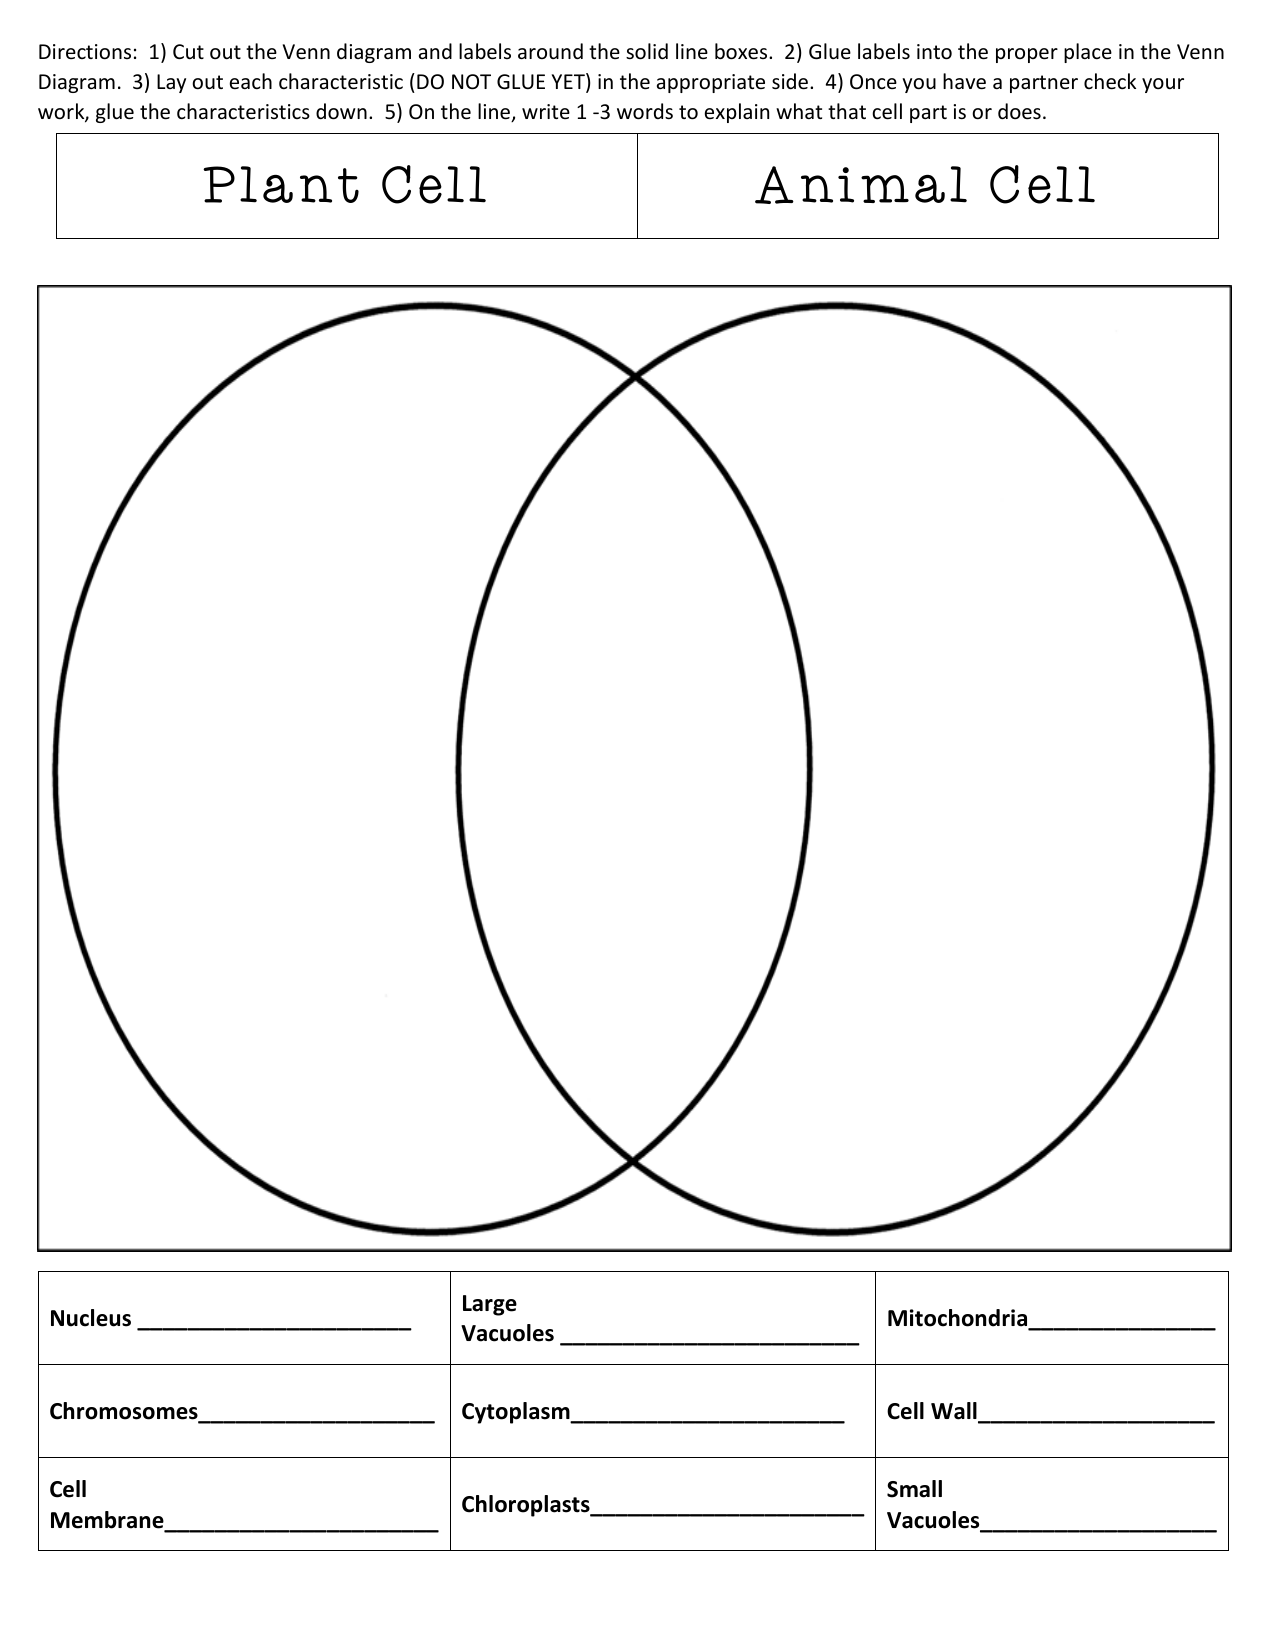 Compare And Contrast Plant And Animal Cells Sort